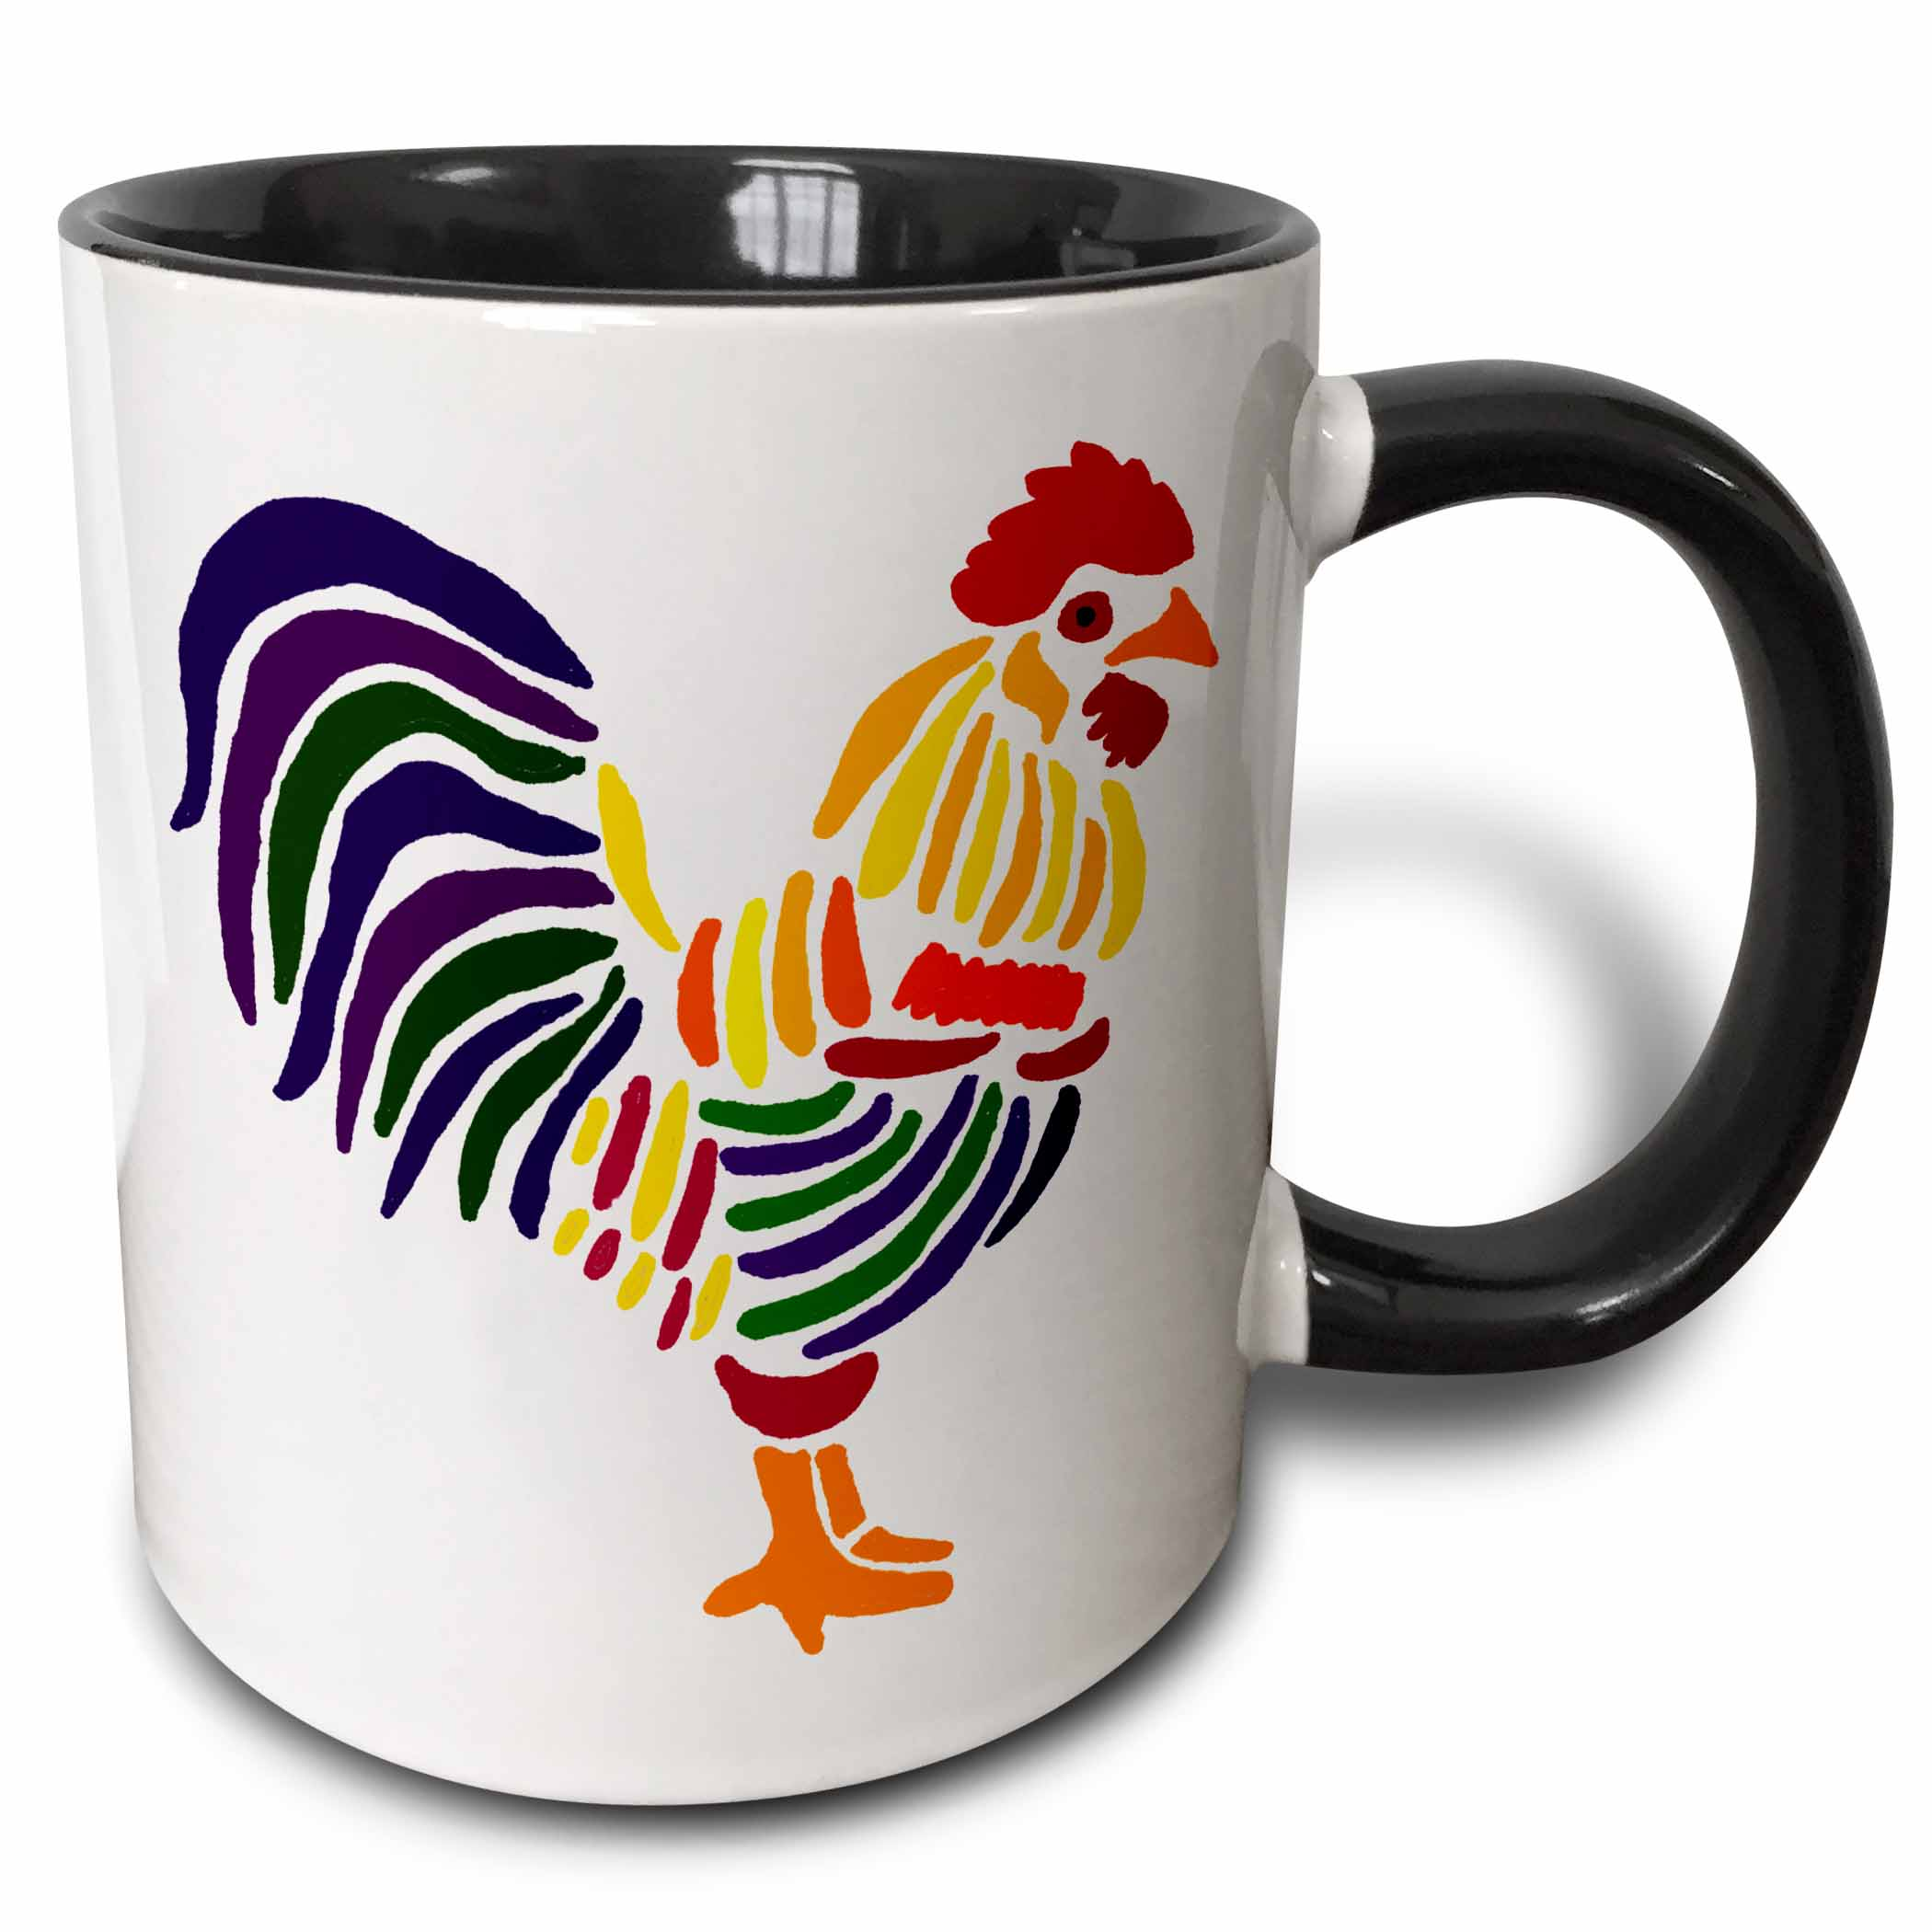 3dRose Artistic Colorful Fun Rooster Abstract Art Original - Two Tone Black Mug, 11-ounce